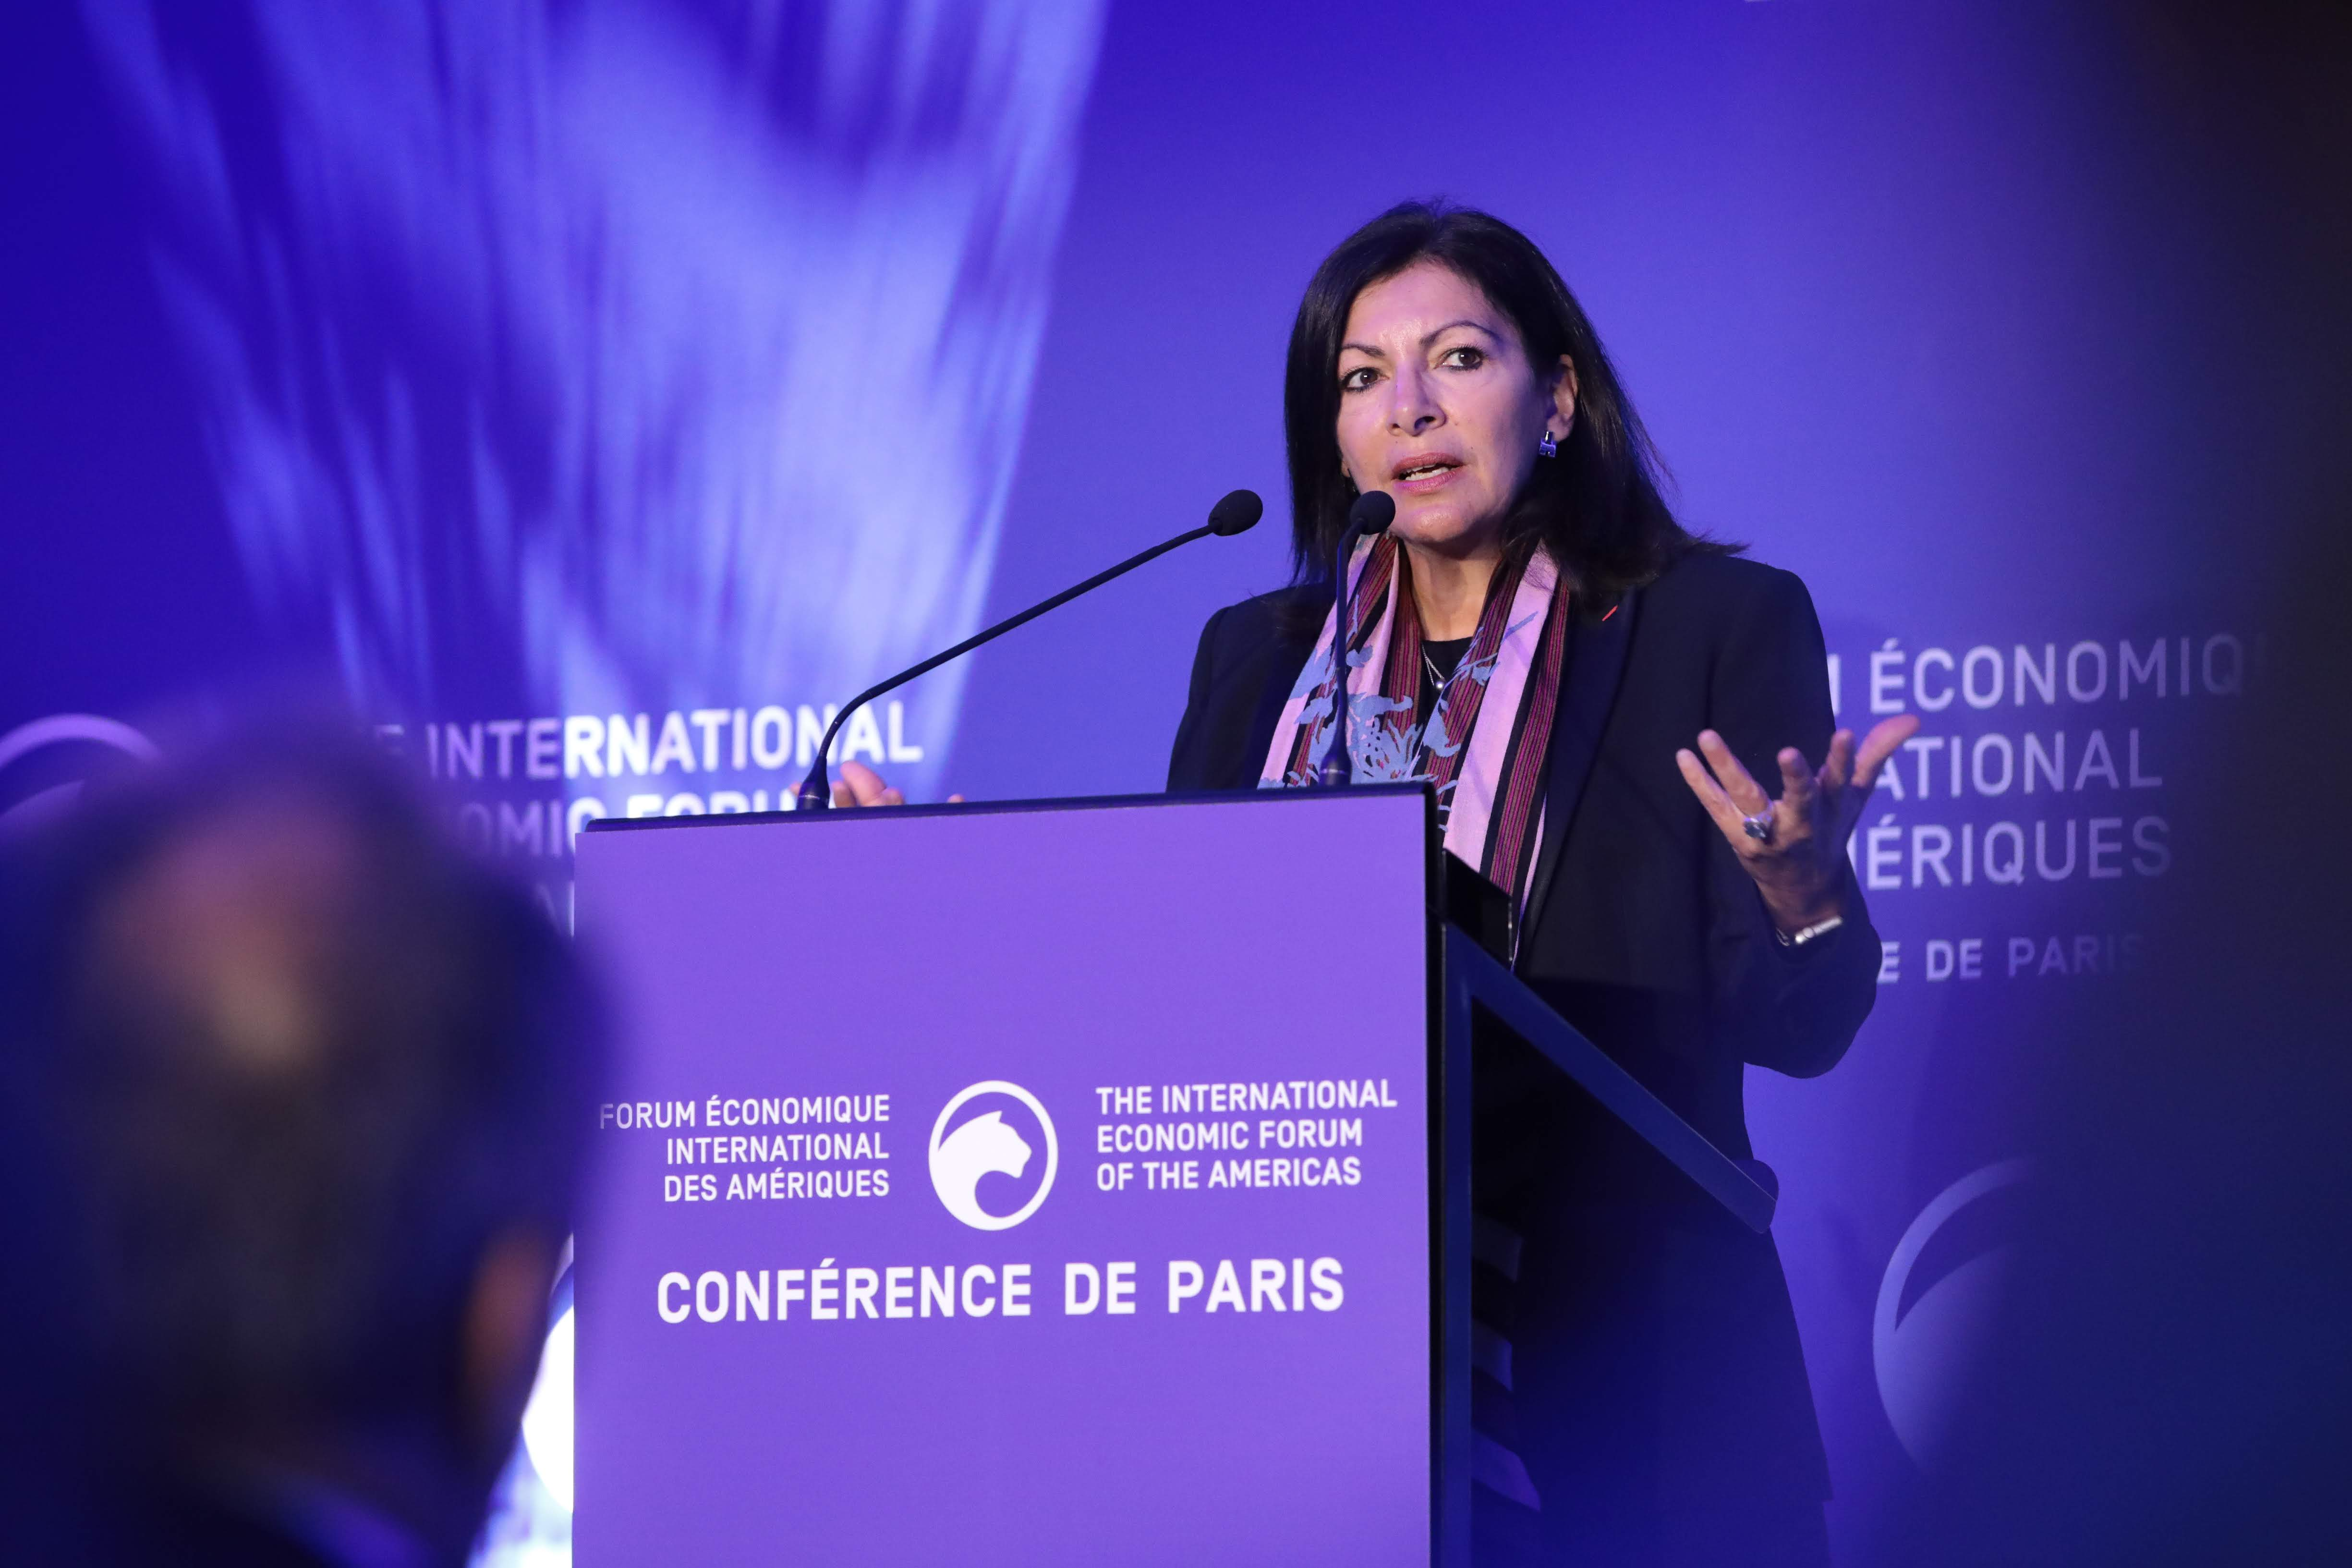 Anne Hidalgo Mayor, City of Paris - Conference of Paris 2019